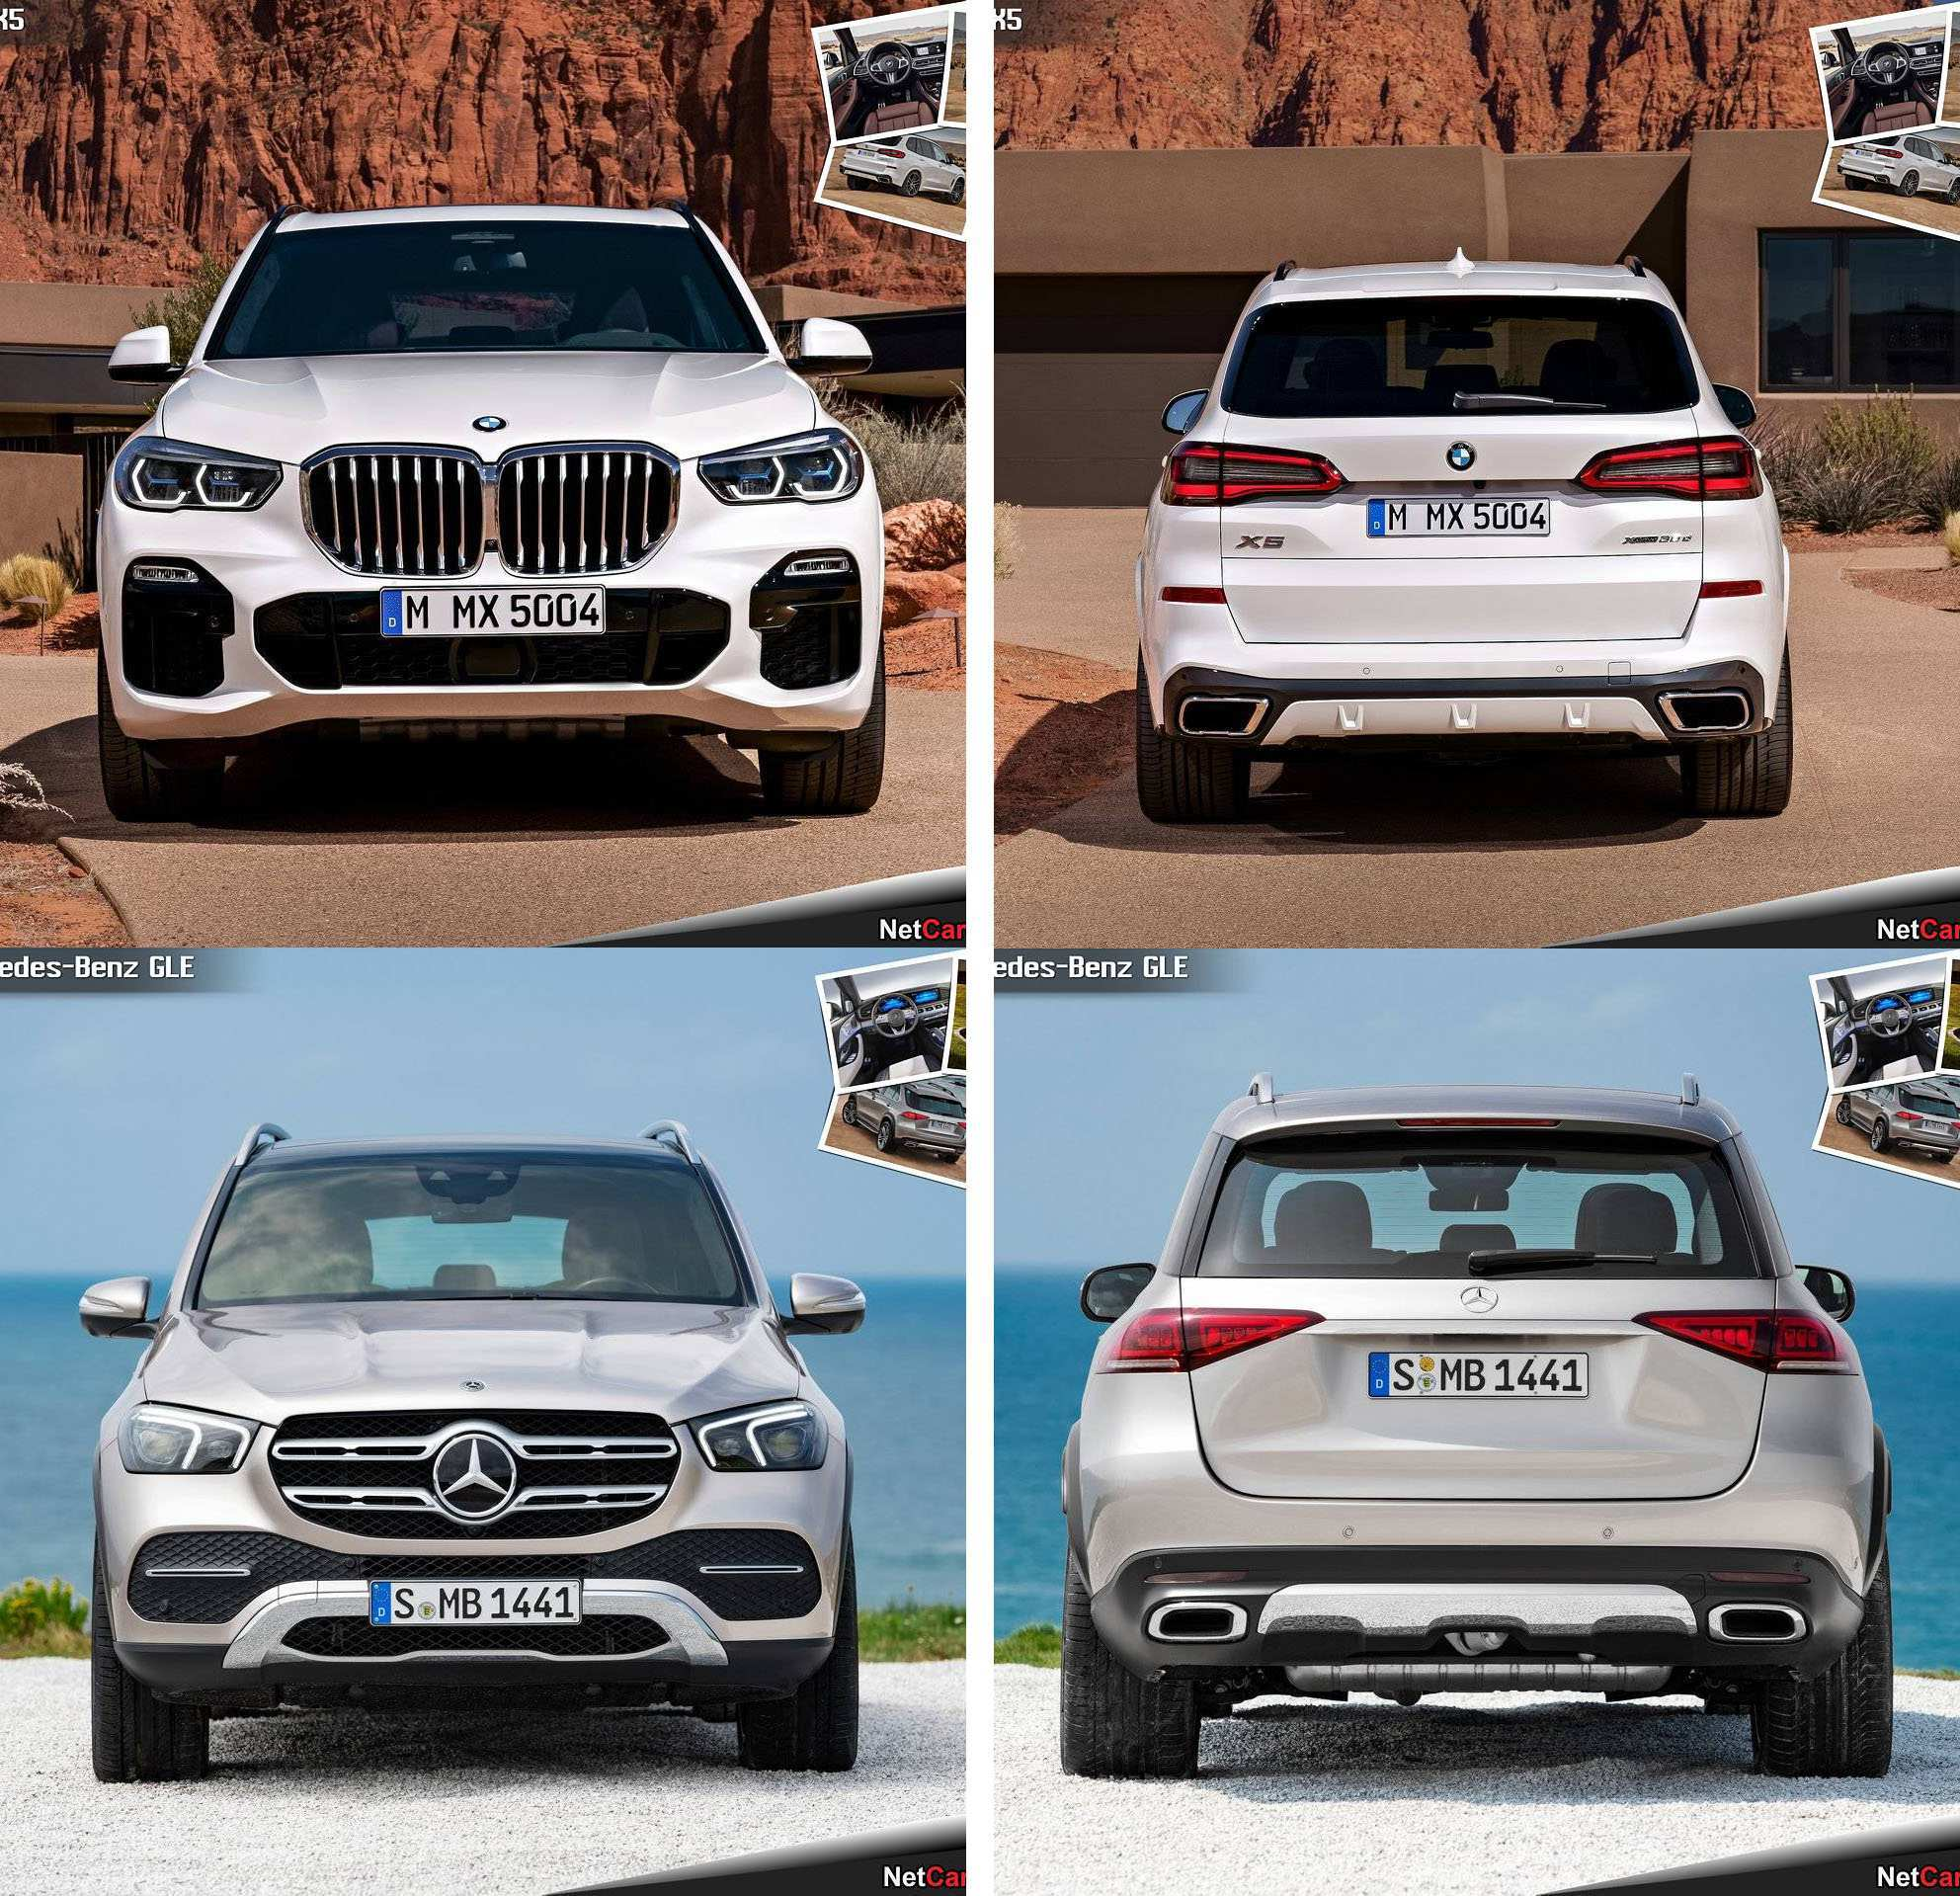 32 All New 2020 Mercedes Gle Vs BMW X5 Prices by 2020 Mercedes Gle Vs BMW X5